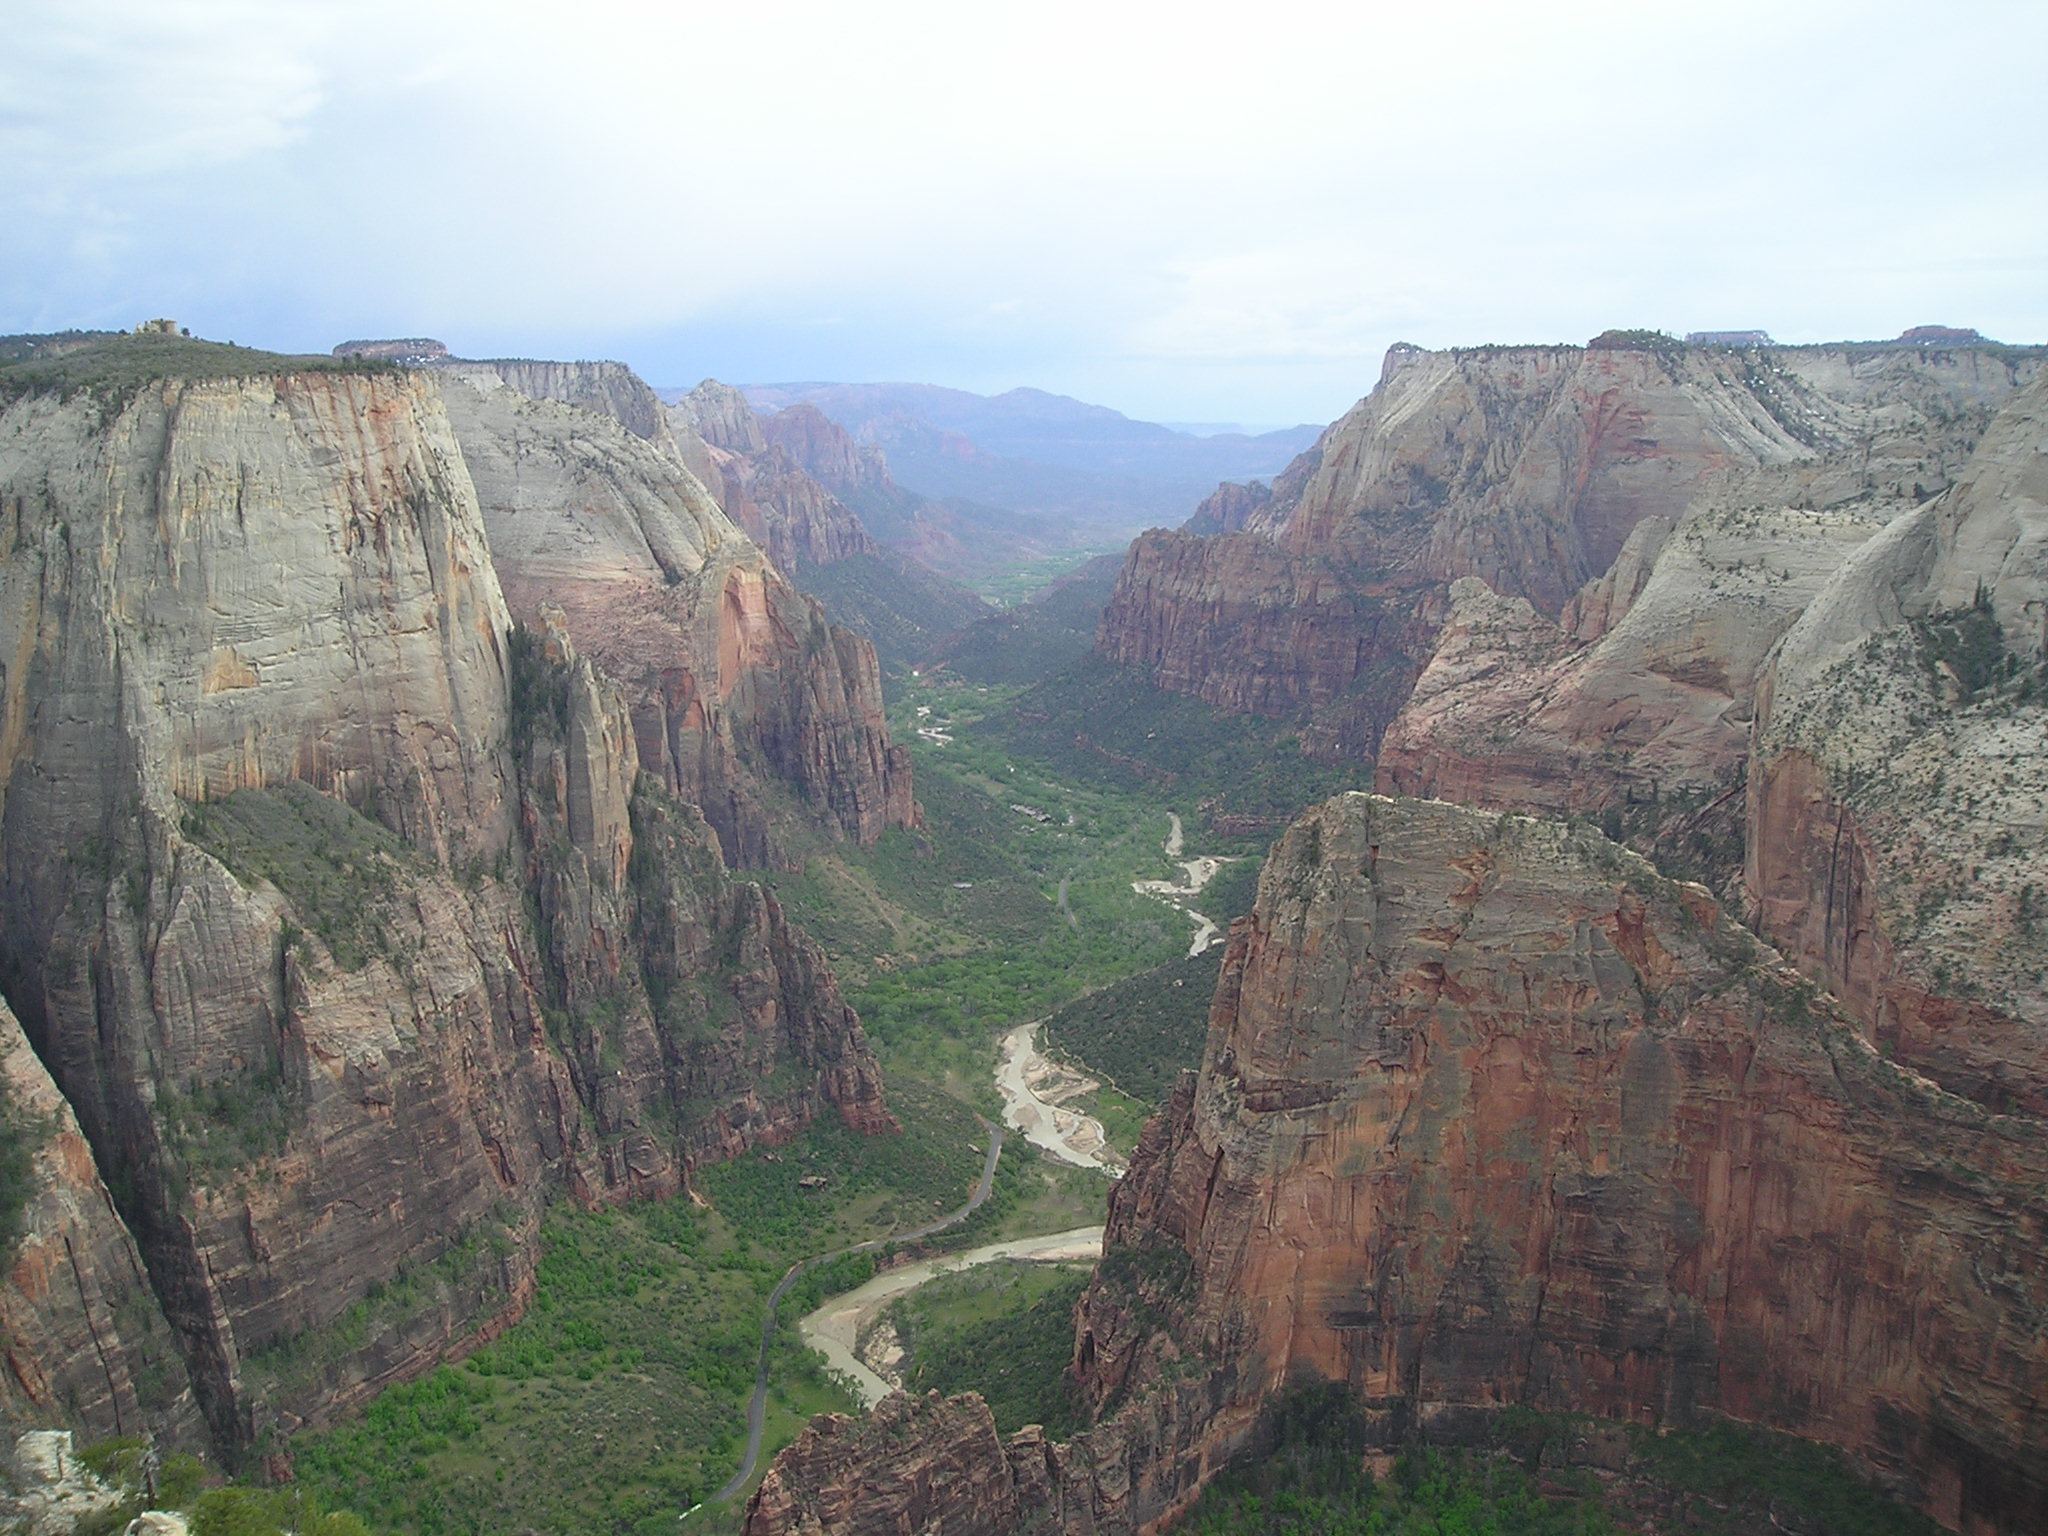 view from Observation Point Trail of Zion National Park